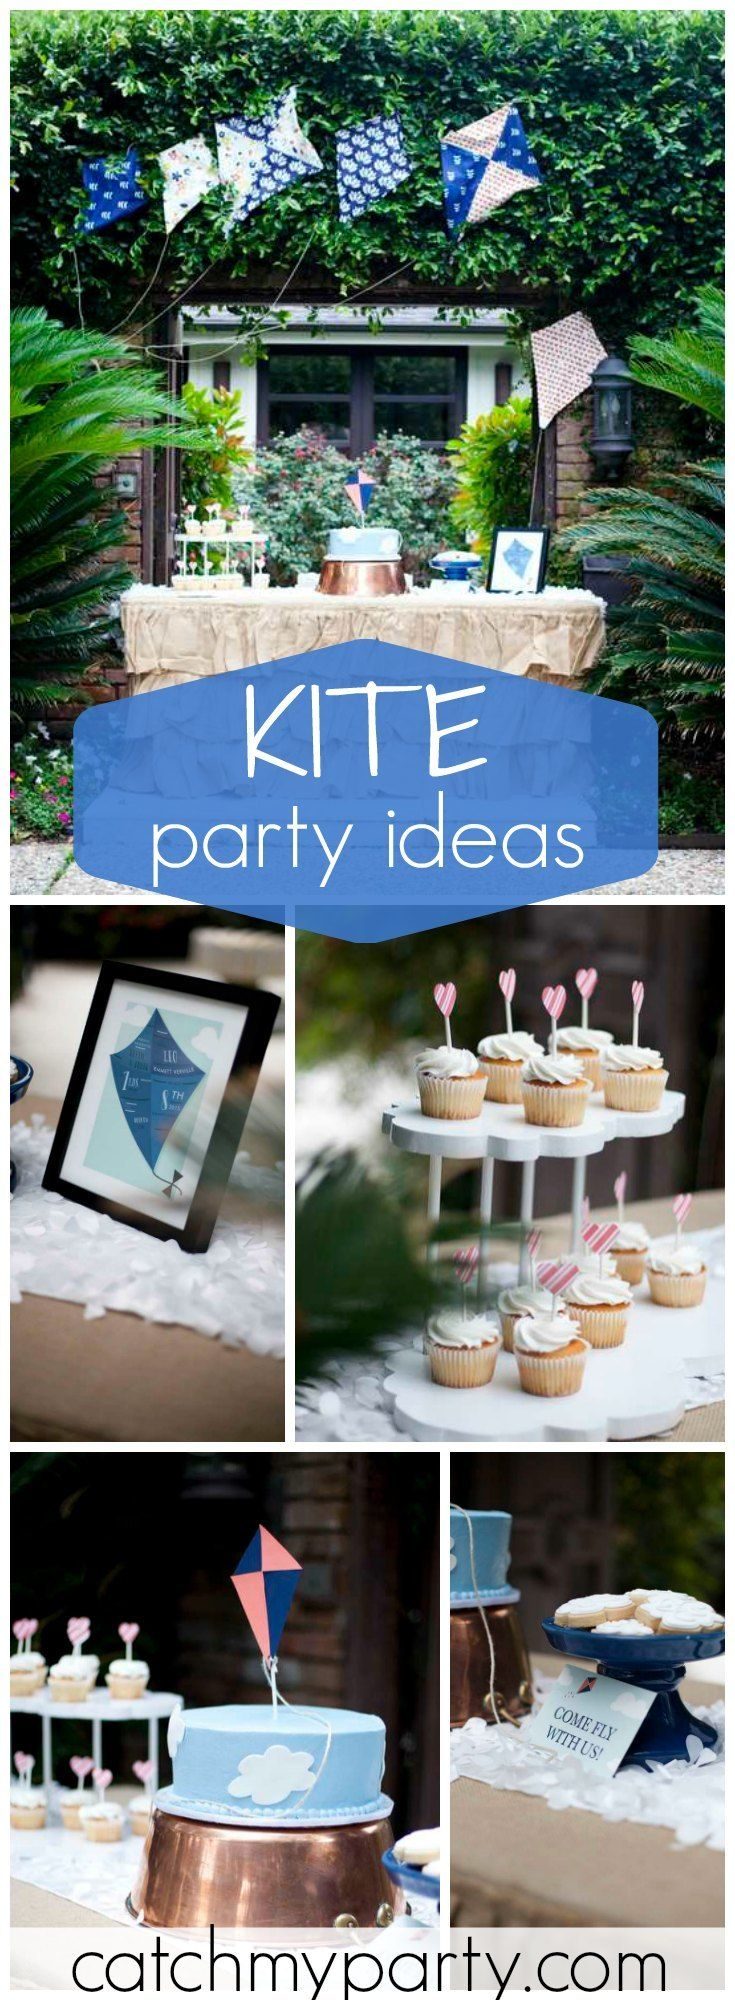 Lots of great ideas at this vintage kite birthday party! See more party ideas at Catchmyparty.com!